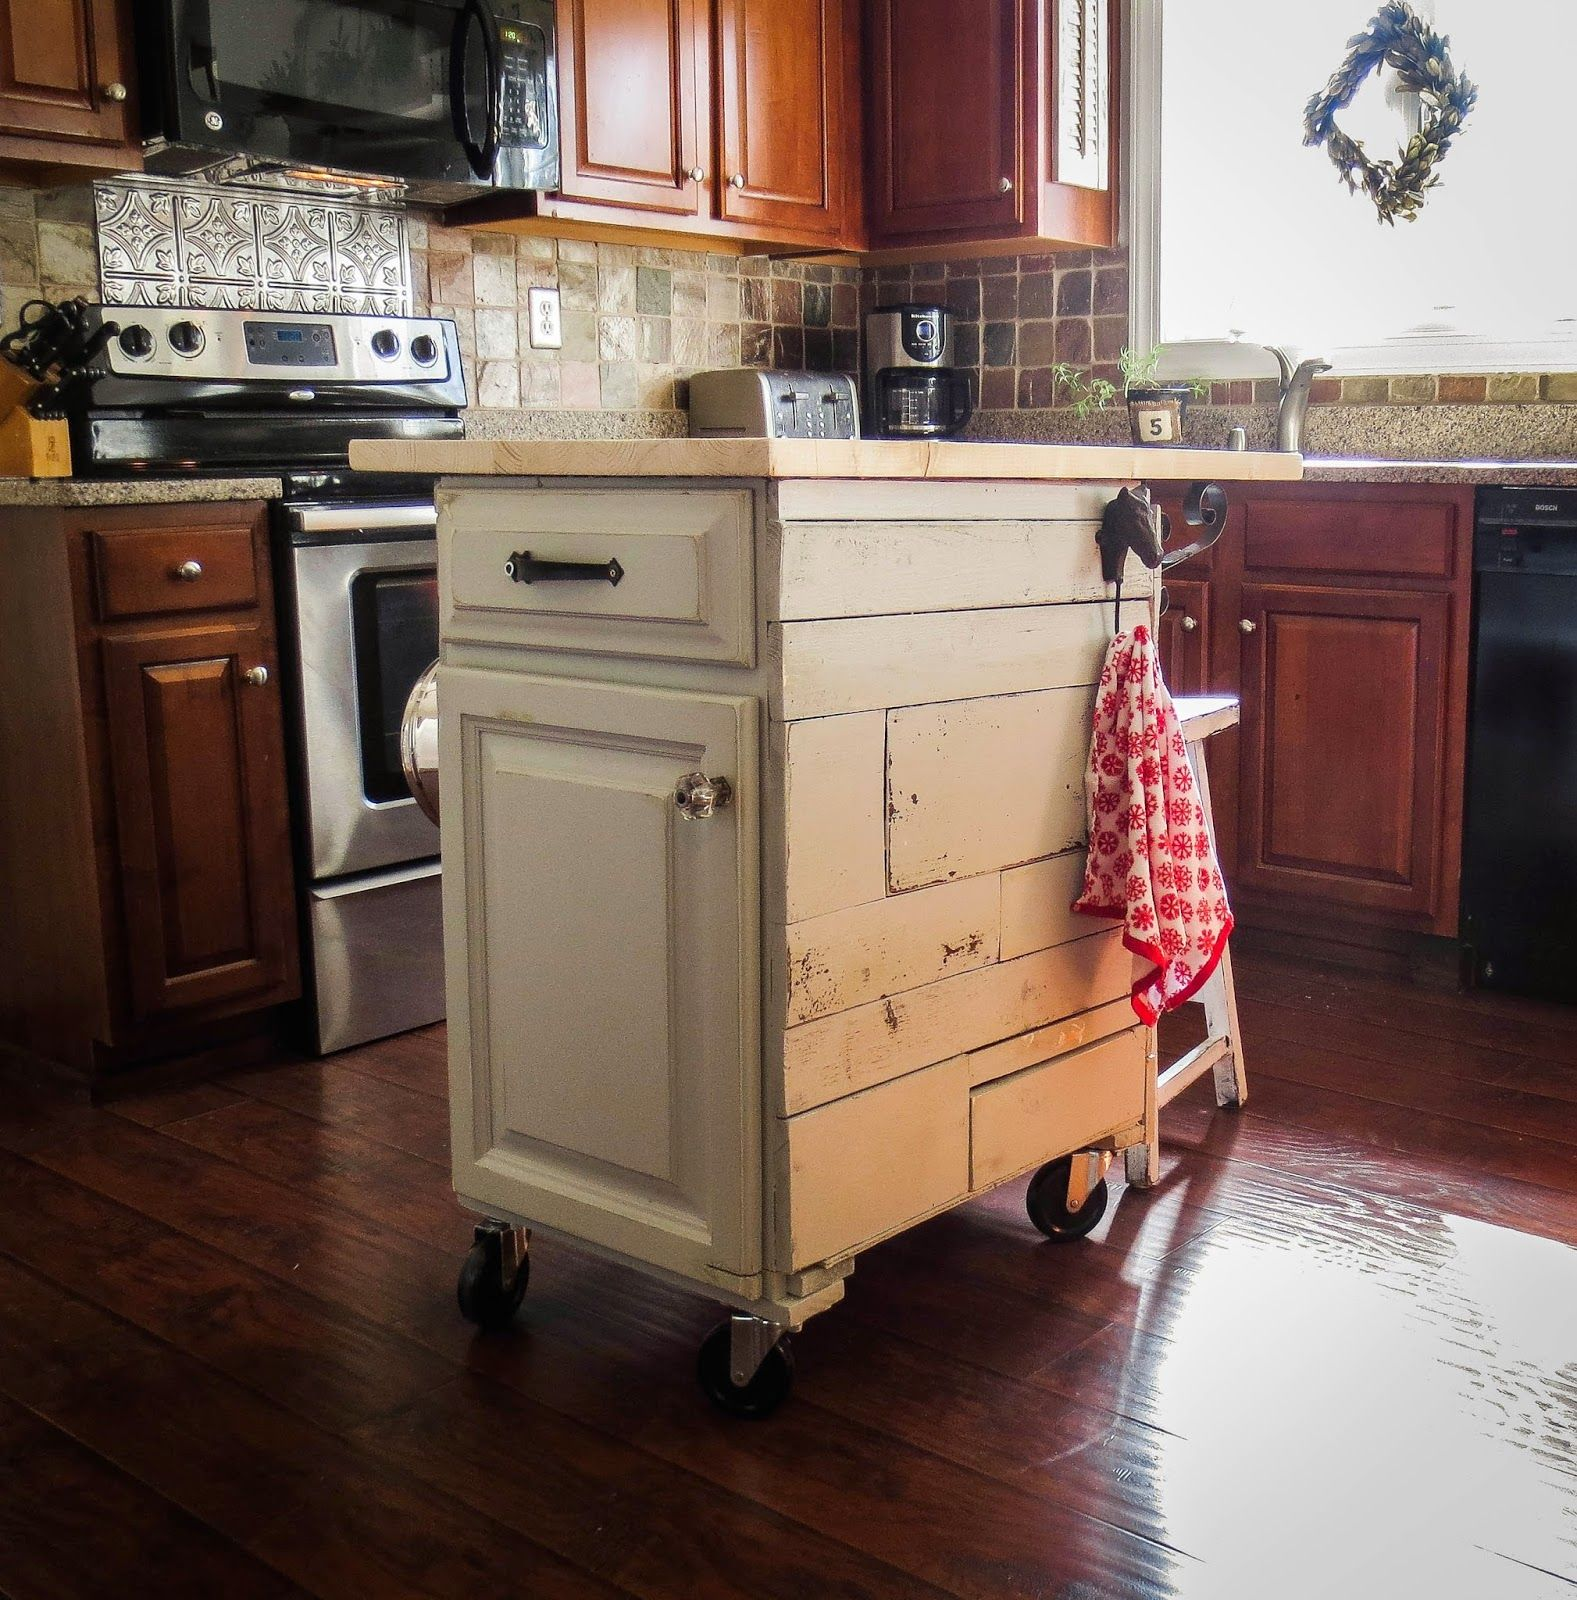 DIY How to Repurpose a Kitchen Cabinet to Use as a Mobile Kitchen